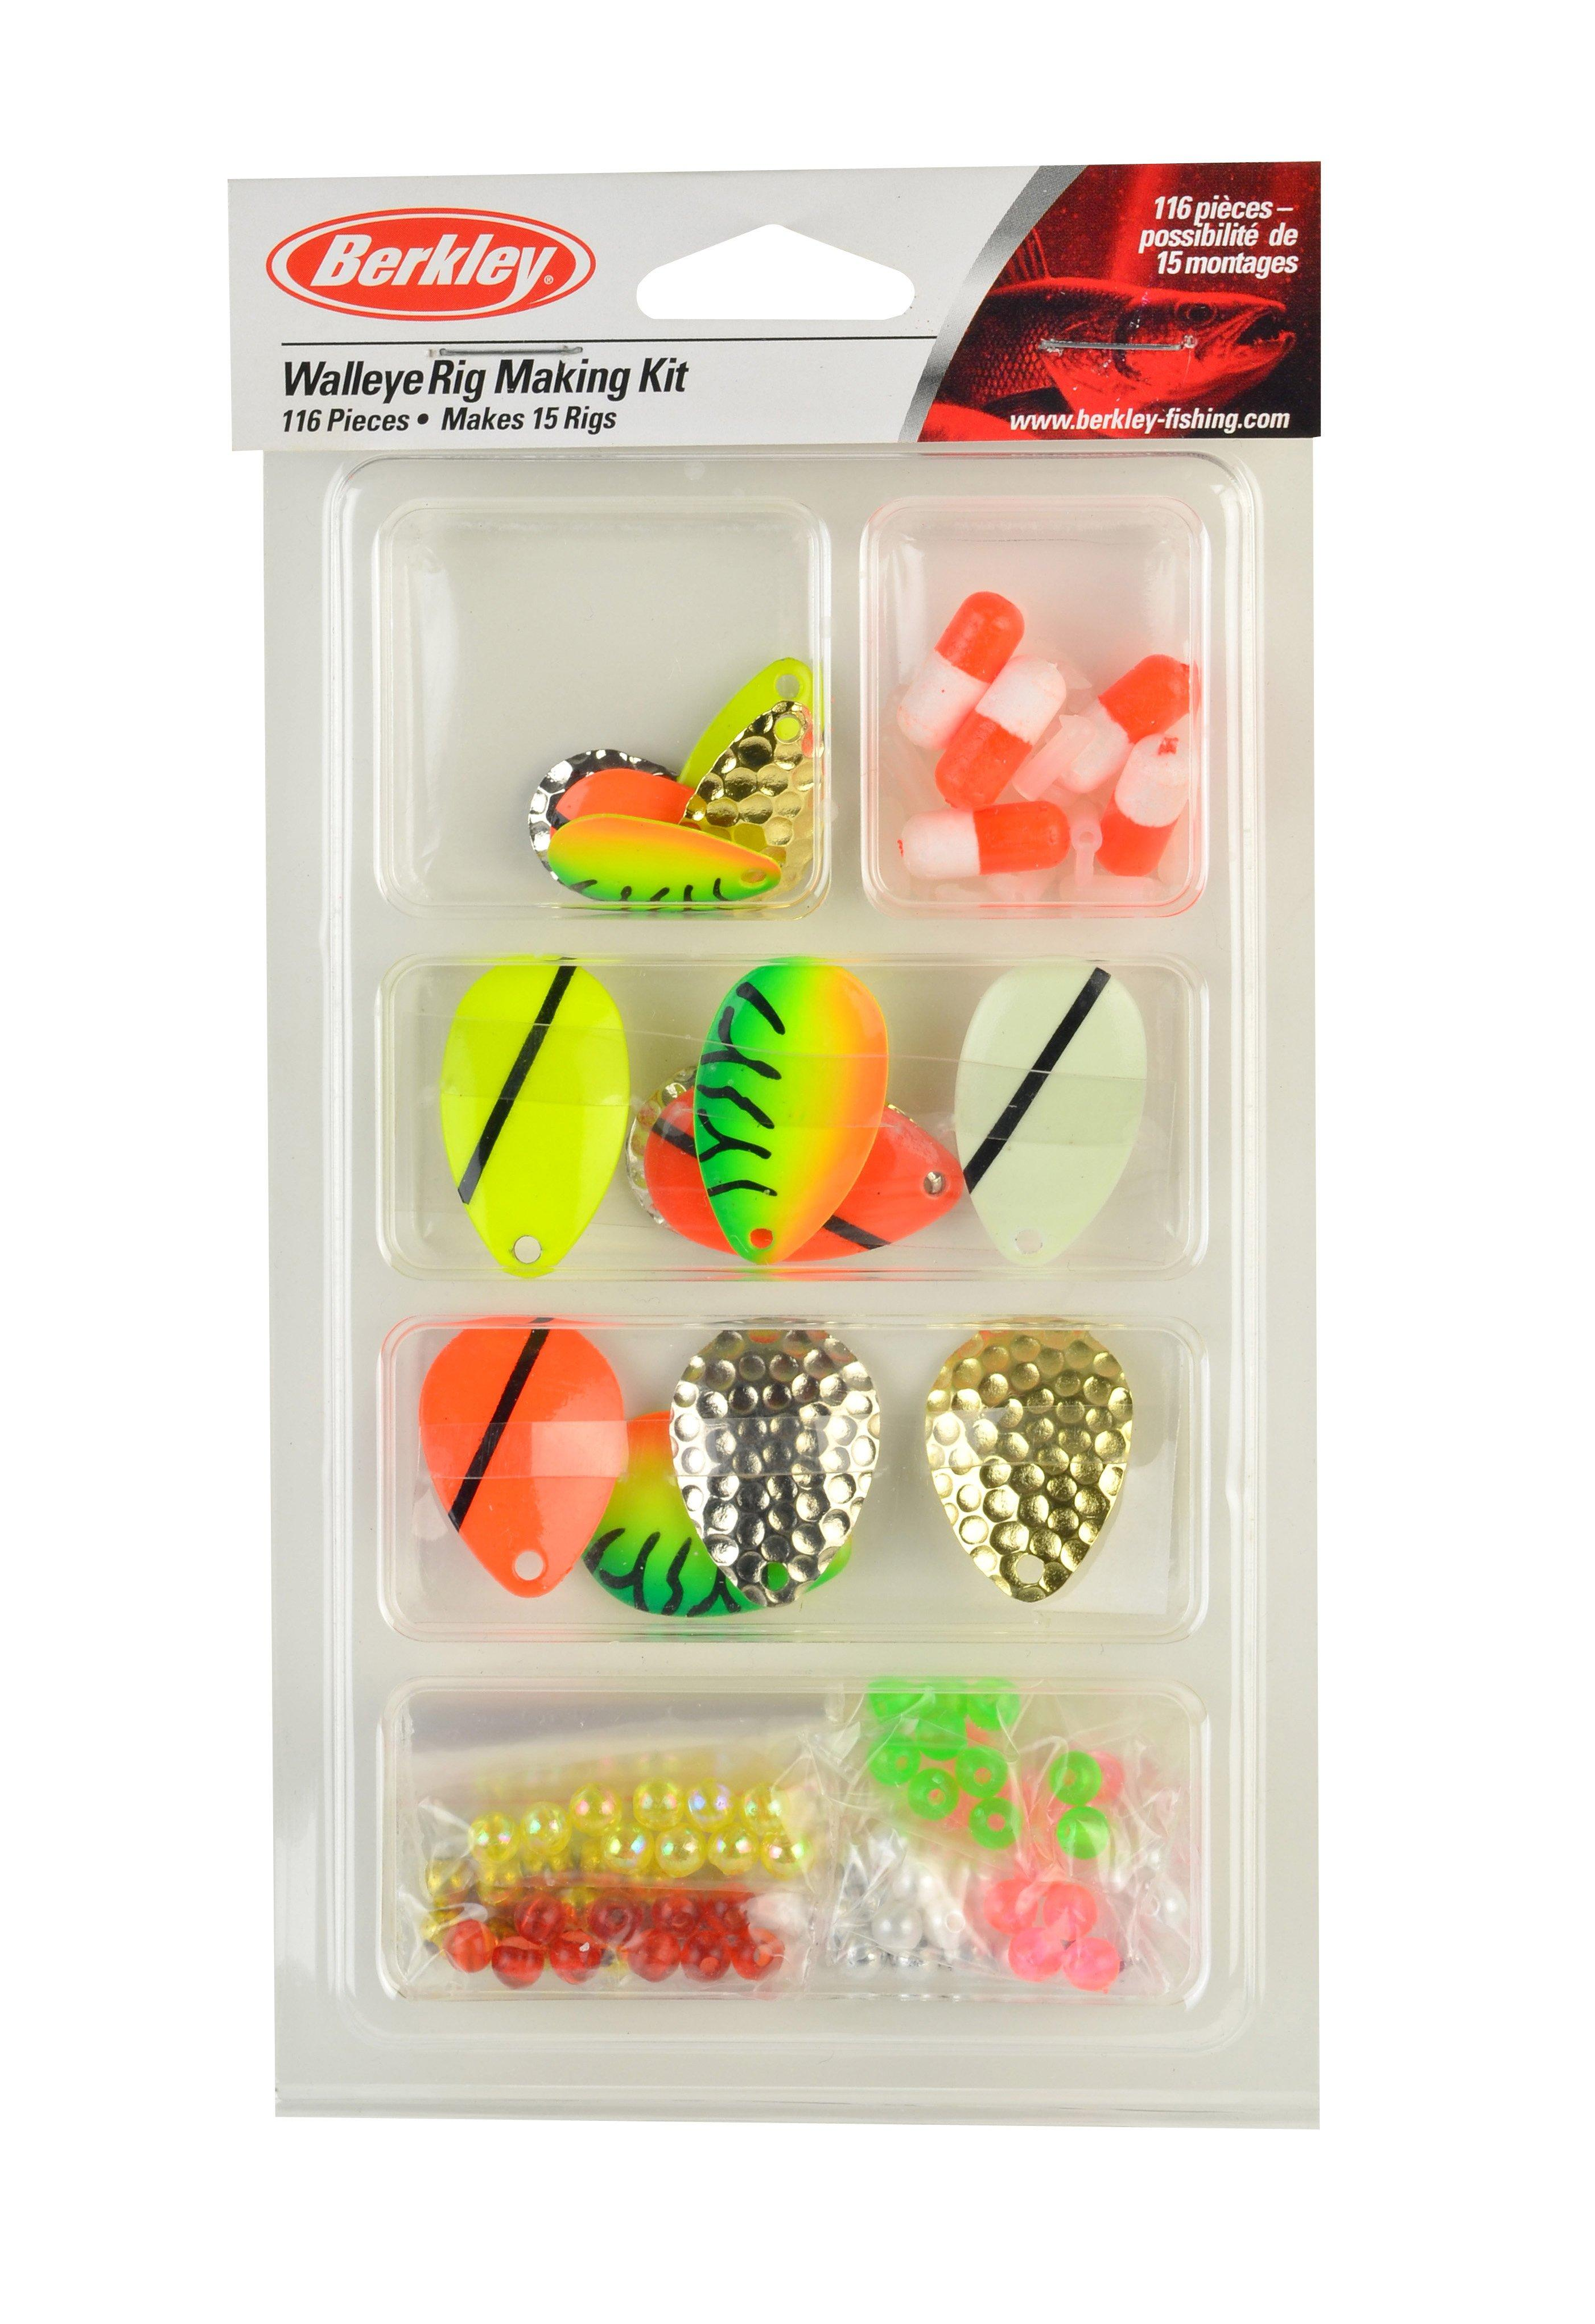 Spinner//Walleye Rig//Pompano Rig//Tail Spinner Making Kit DIY Spinnerbait Accesory